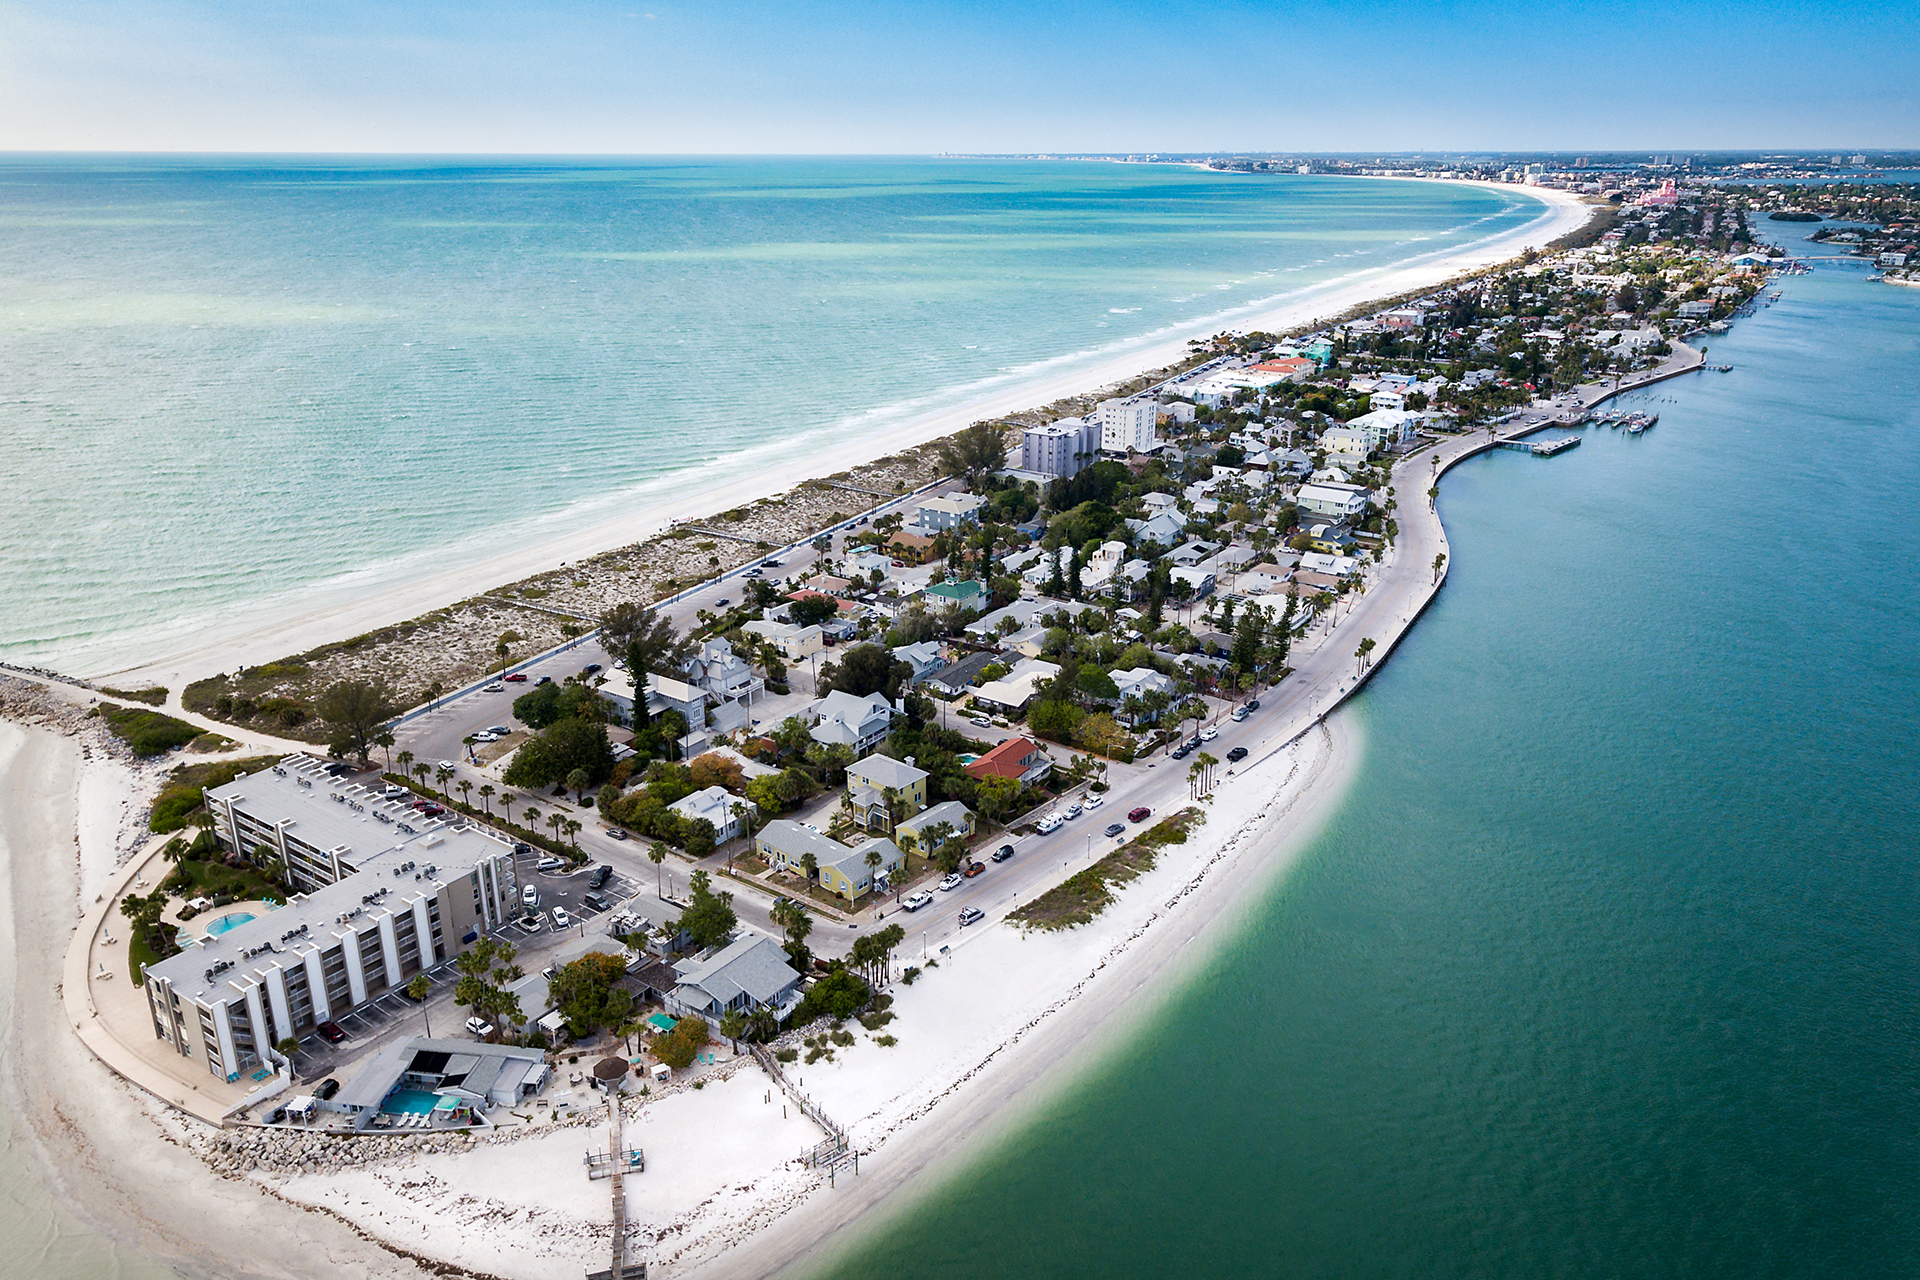 Aerial View of Pass-a-Grille, Florida; Courtesy of Kevin J King/Shutterstock.com